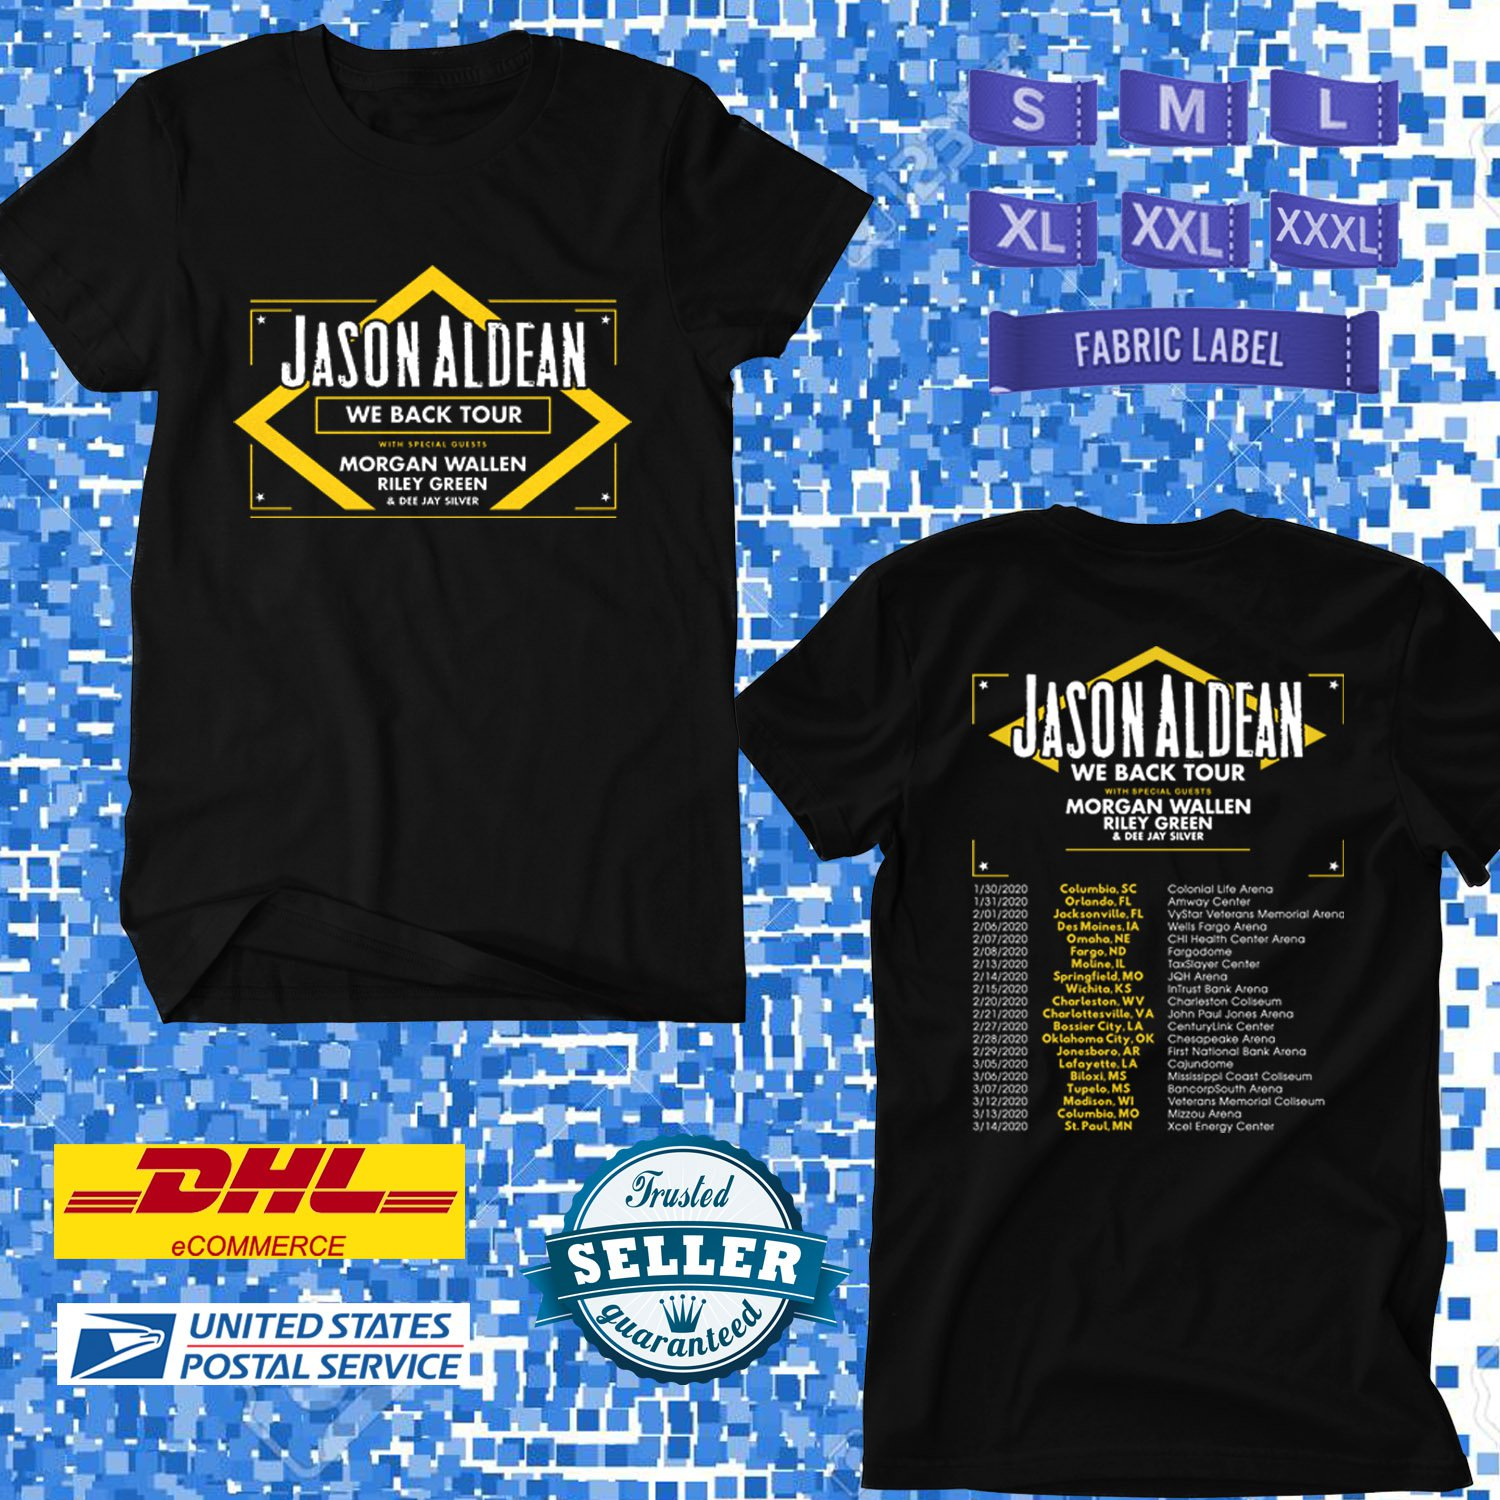 TOUR 2020 JASON ALDEAN WE BACK US TOUR BLACK TEE W DATES CODE EP02